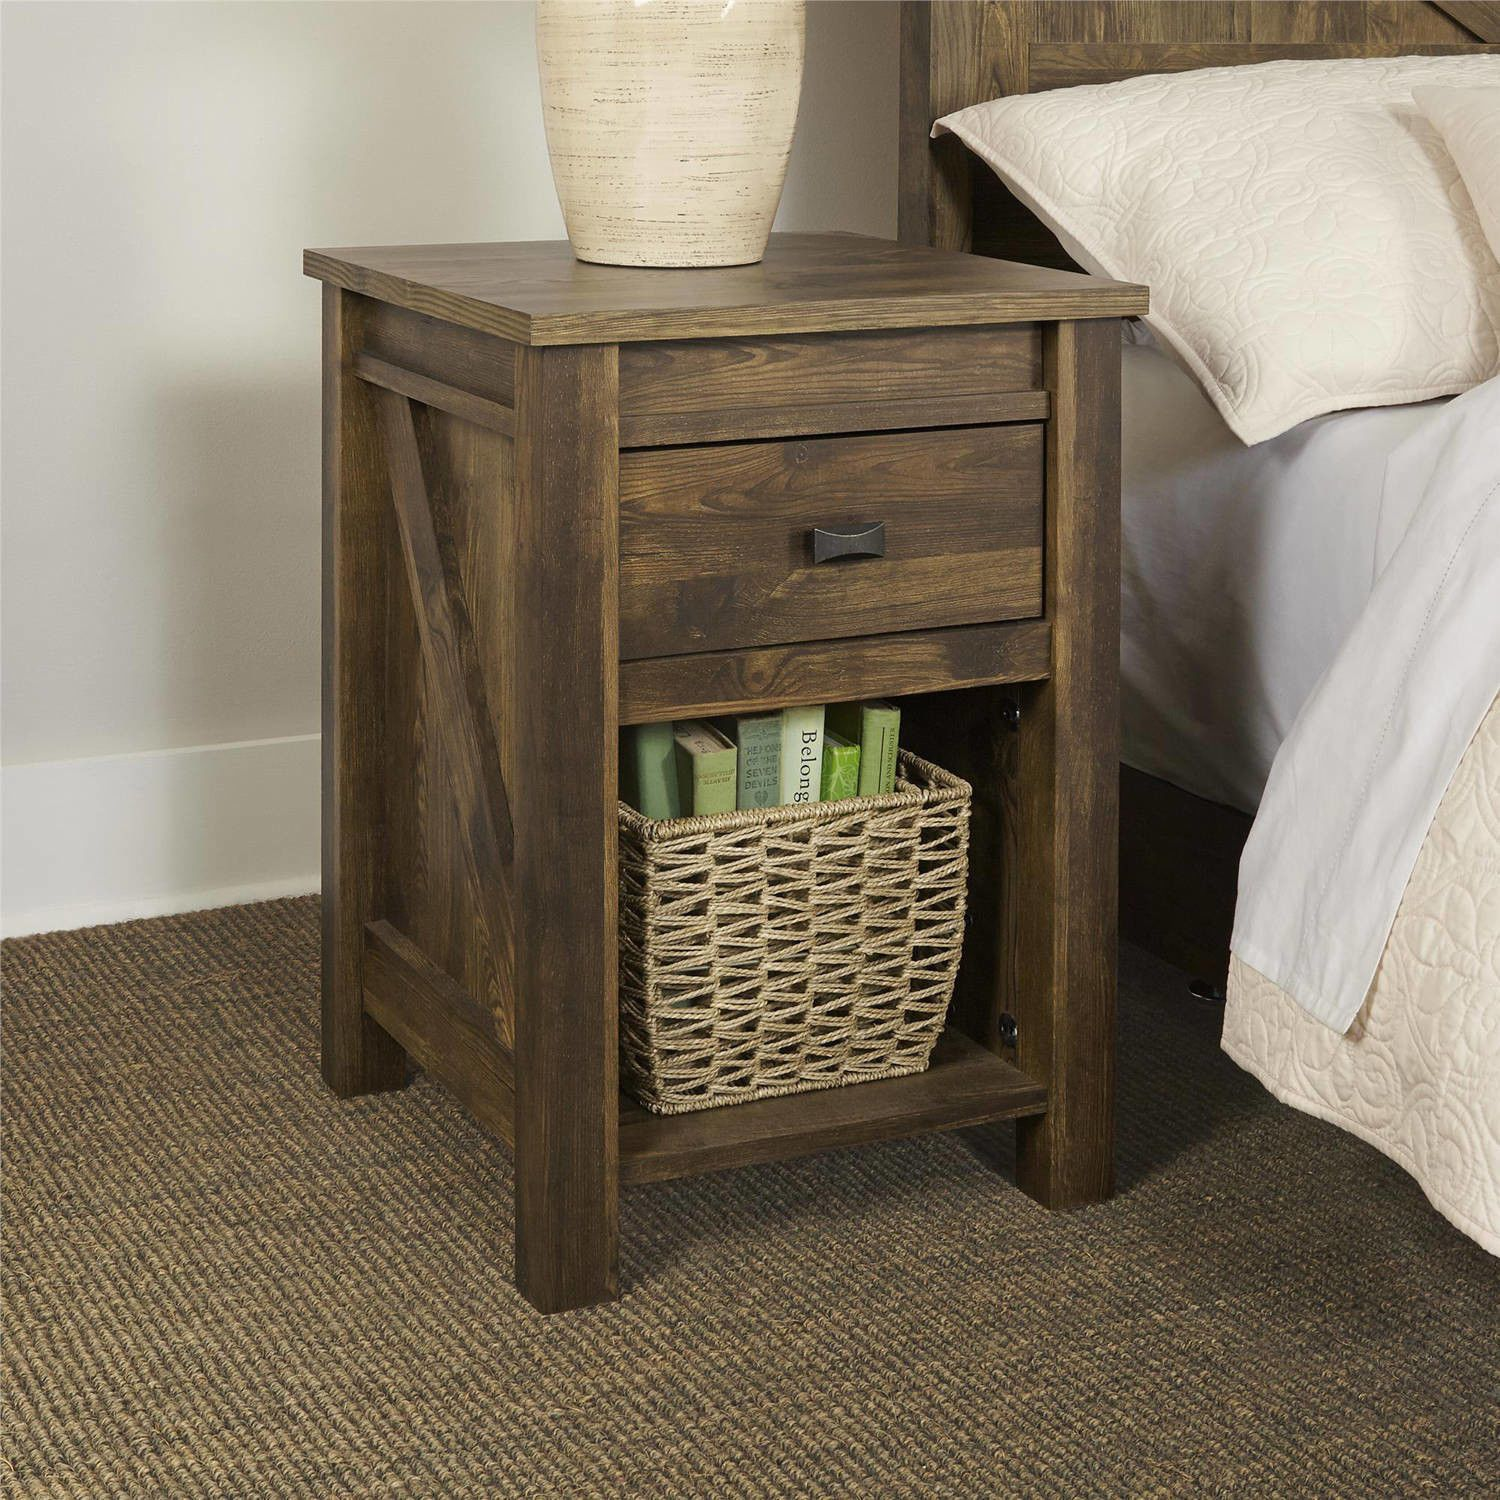 Rustic End Table Farmhouse Reclaimed Barn Wood Accent Nightstand